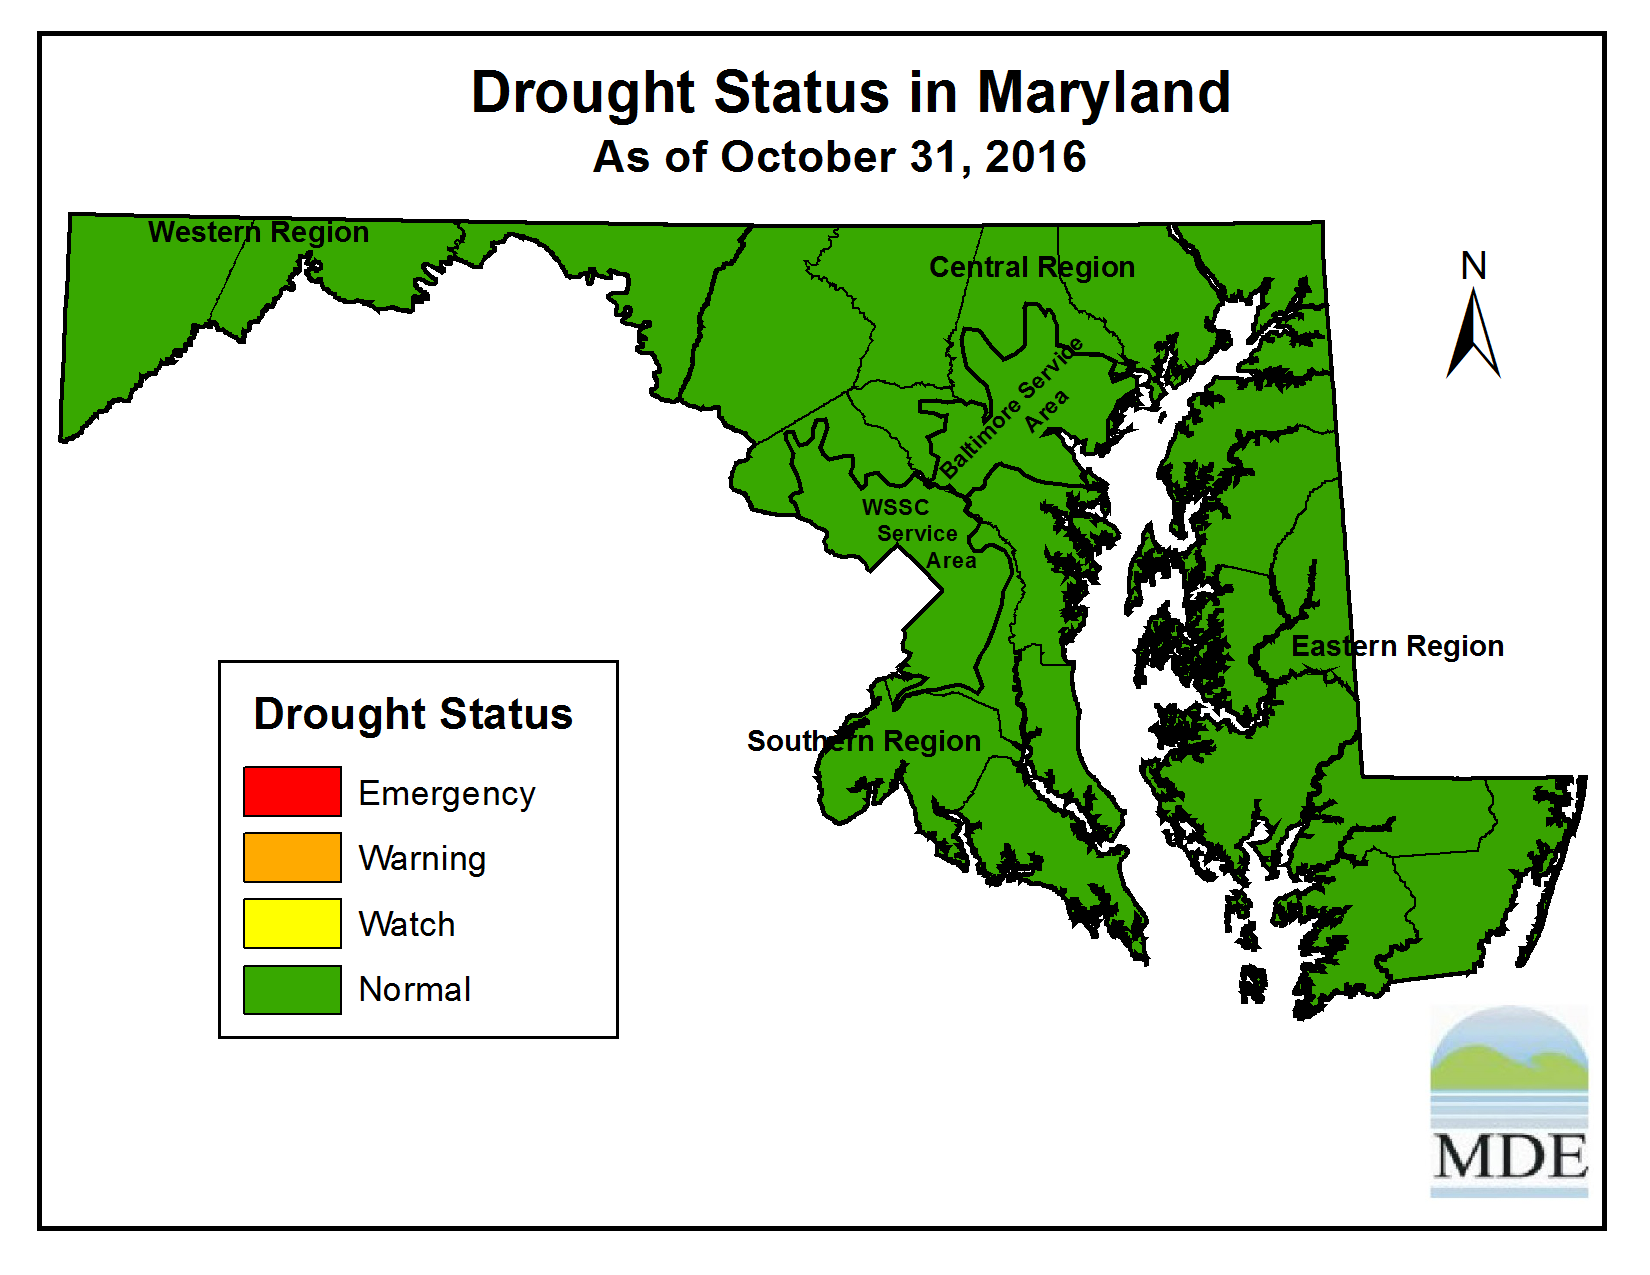 Drought Status as of October 31, 2016